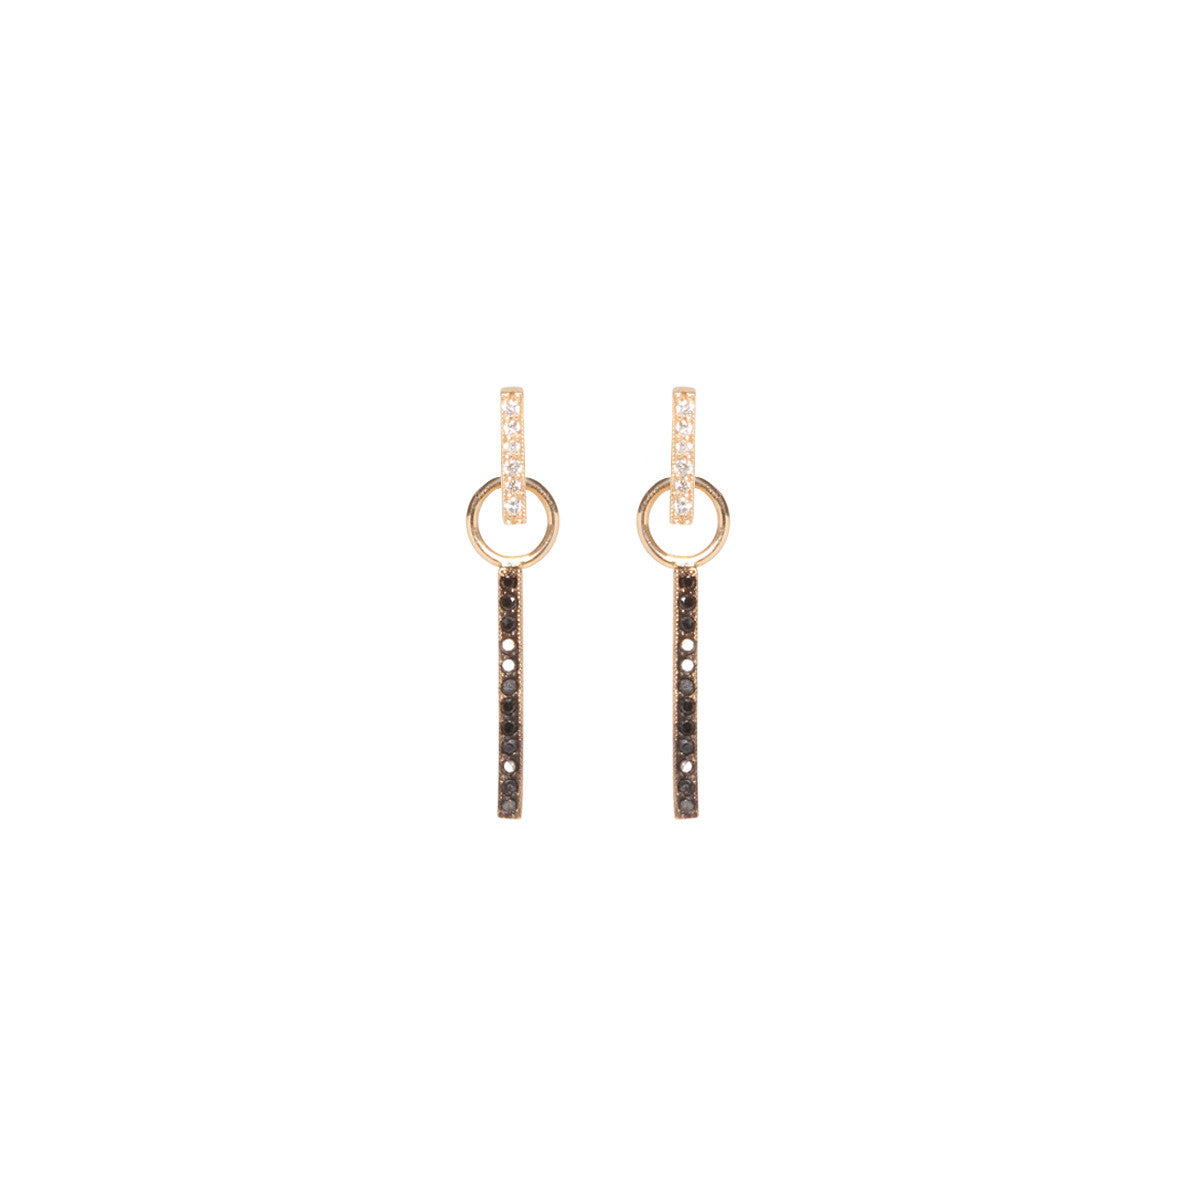 14k pave black & white front to back earrings